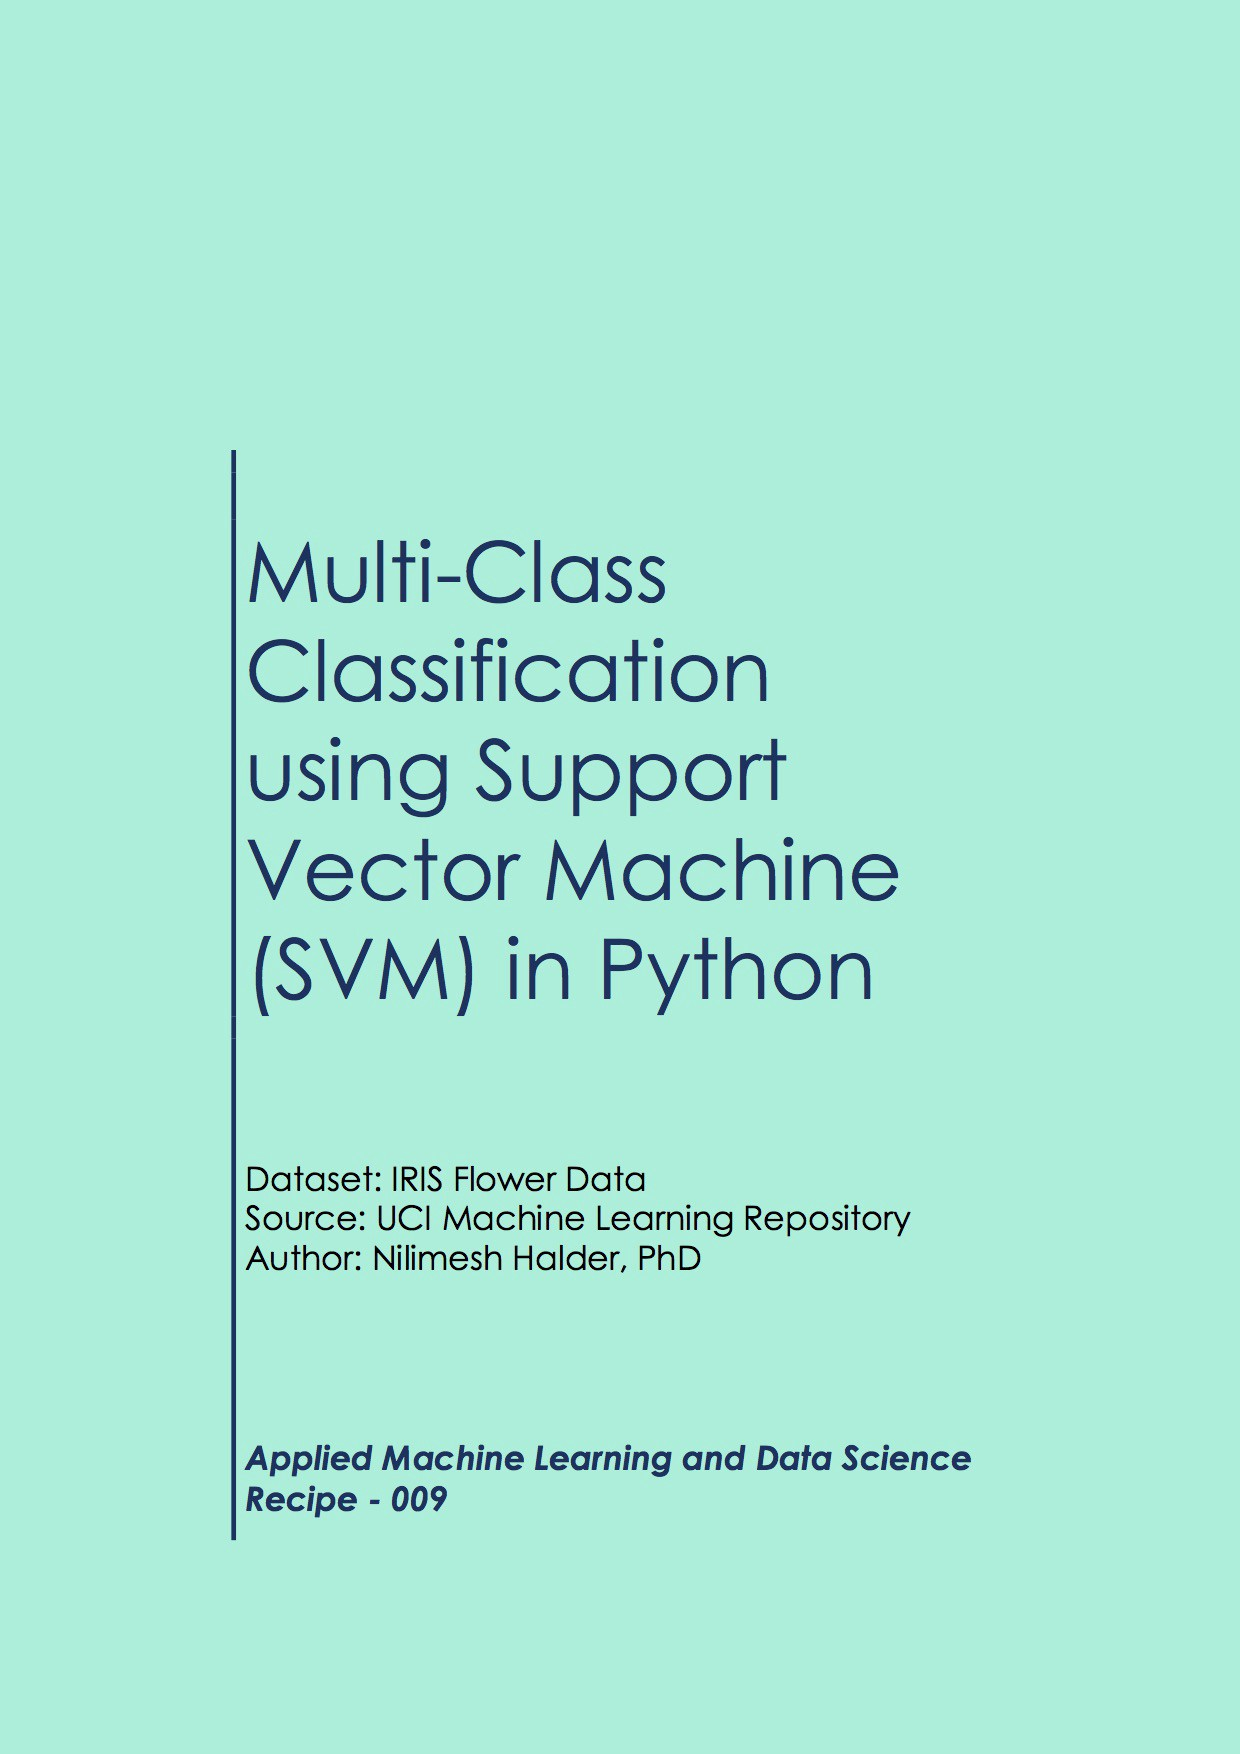 Multiclass Classification using Support Vector Machine (SVM) in